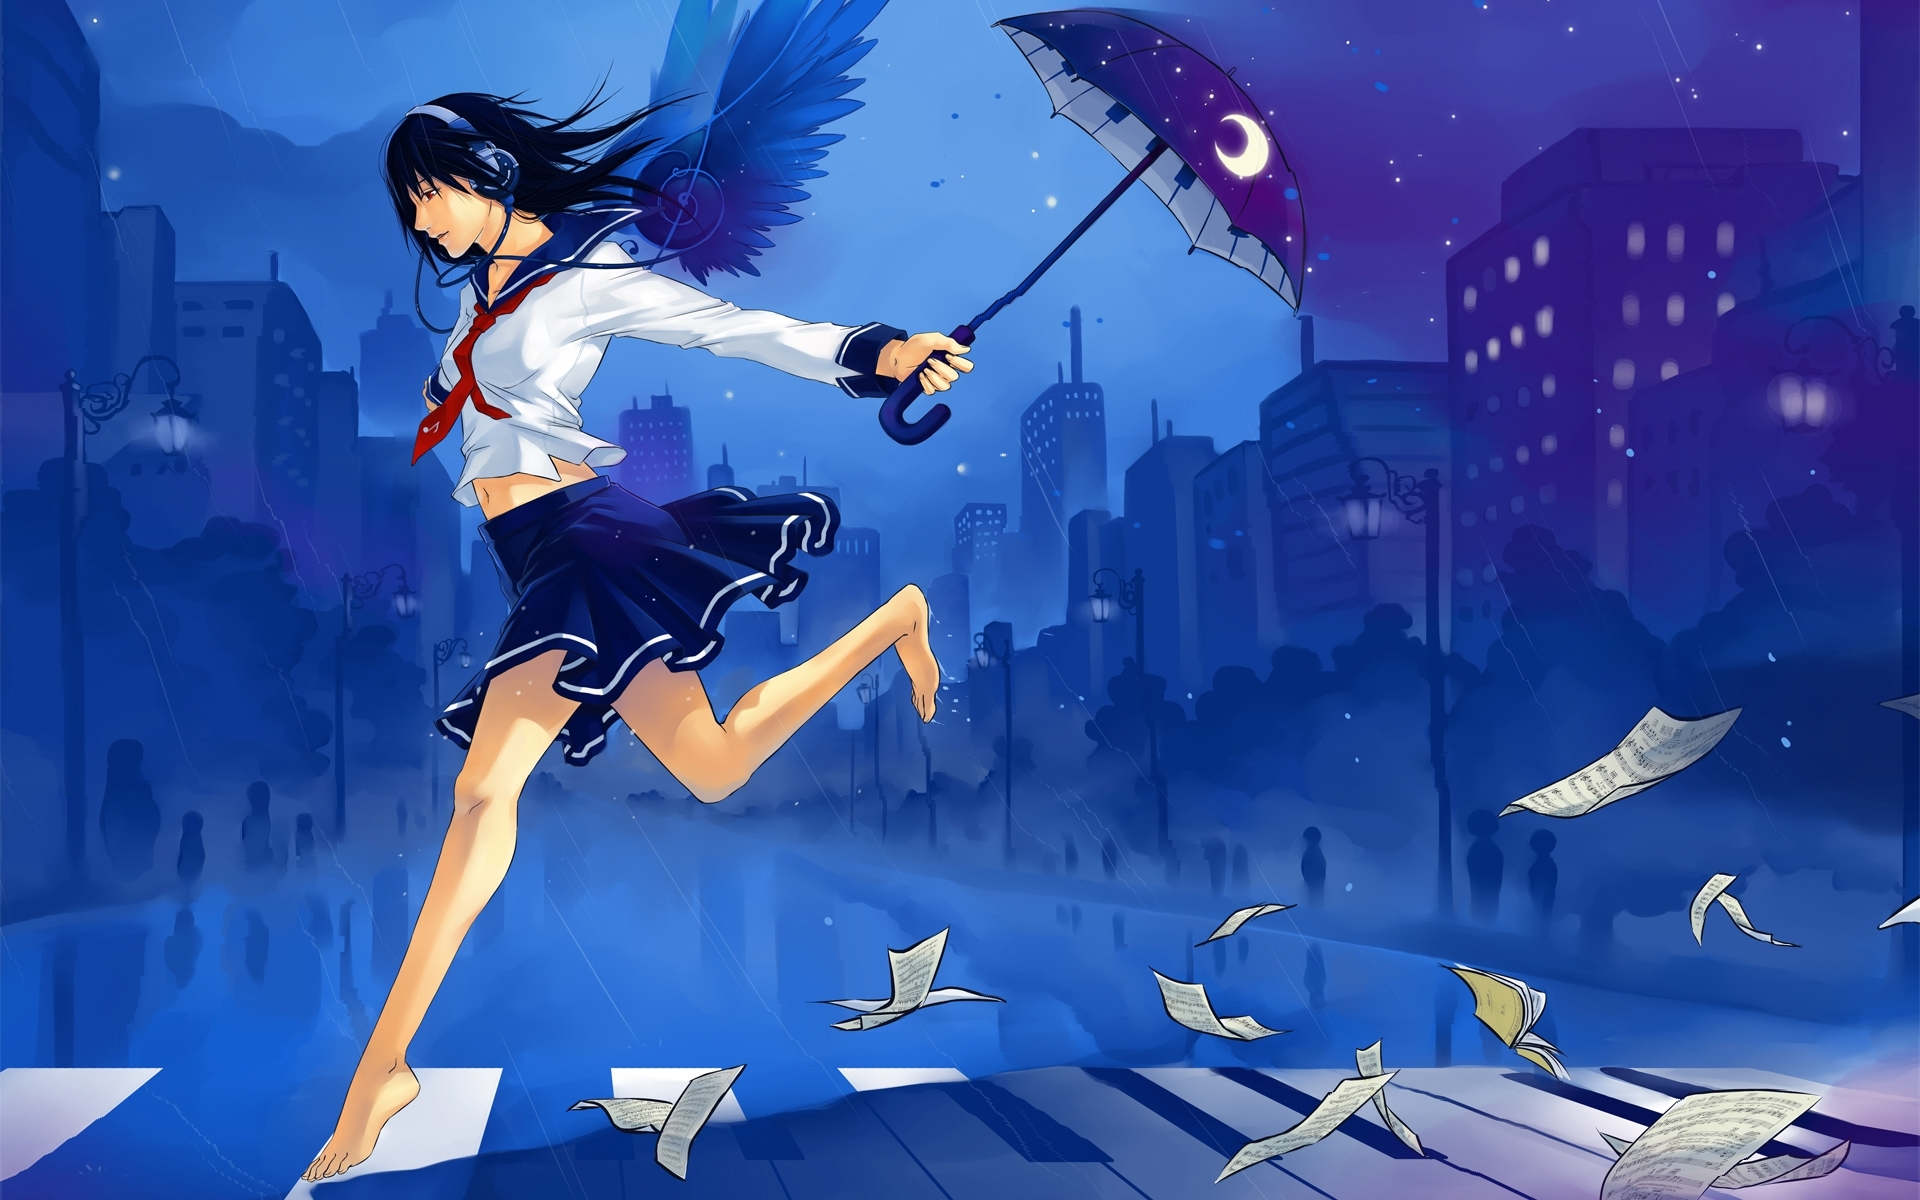 Anime Girl Umbrella Headphones Wallpapers Anime Girl Umbrella